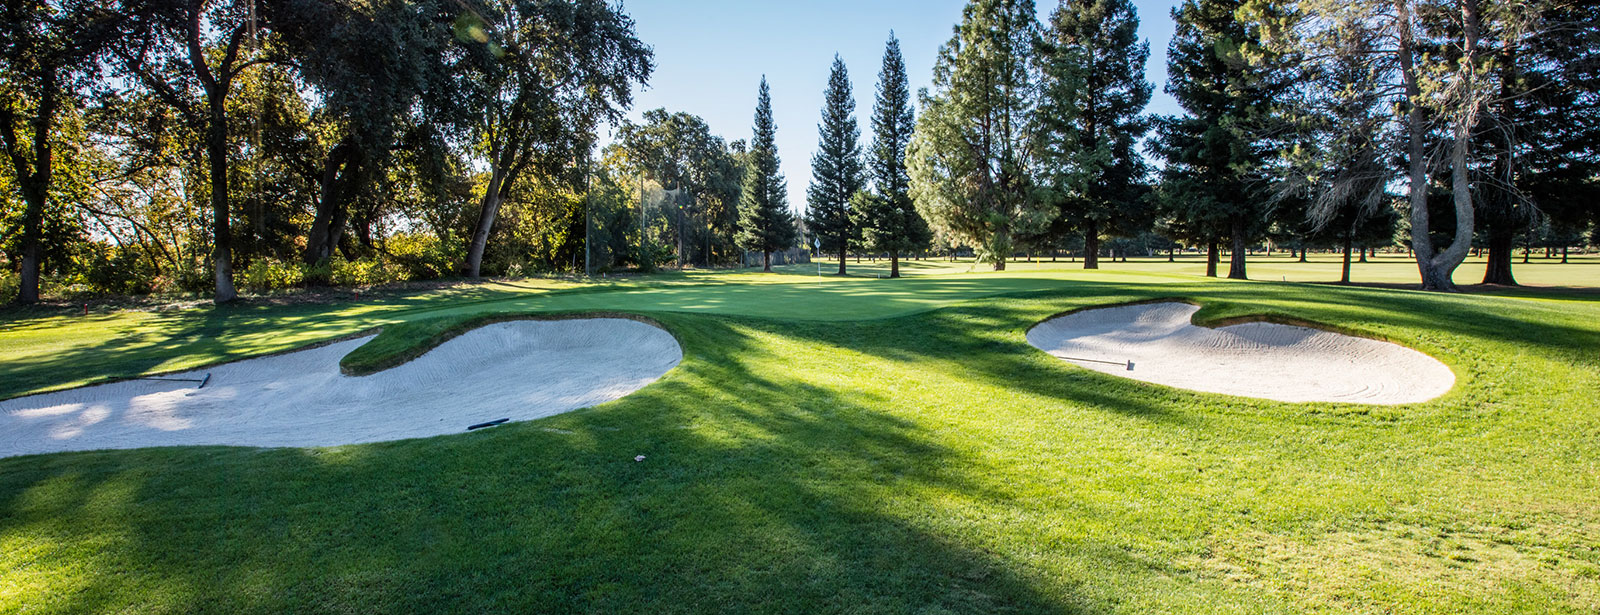 Overview of golf course named Butte Creek Country Club